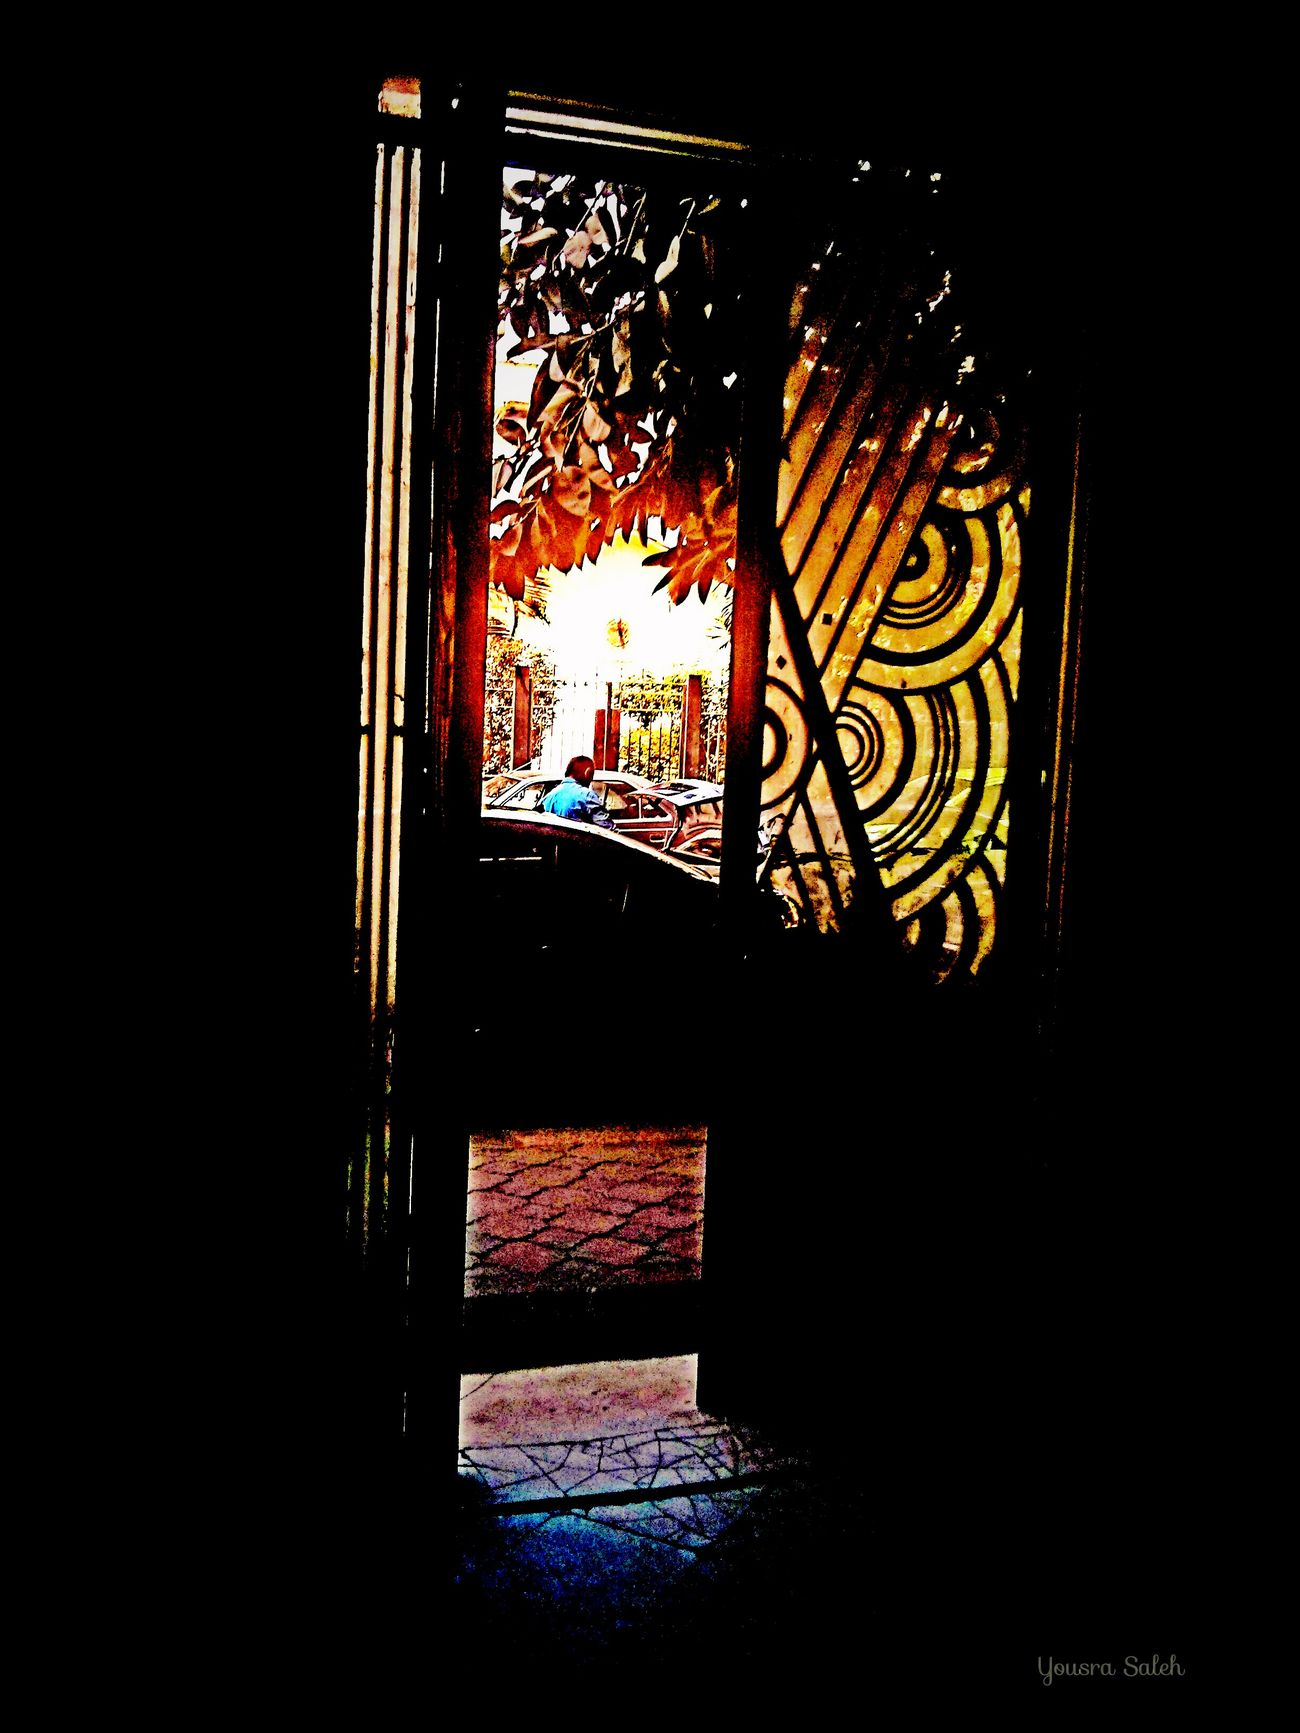 Opened Door Open Door Door View Door Door Designs Classic Design Door Decorations Door Details Building Built Structure Architectural Detail Street View Shadows & Lights Sunny☀ Sunnyday☀️ Sunny Day Afternoon Afternoon Time Afternoon Light Afternoon Sun Trees Car Architecture Architecture_collection Love To Take Photos ❤ 10May_2016